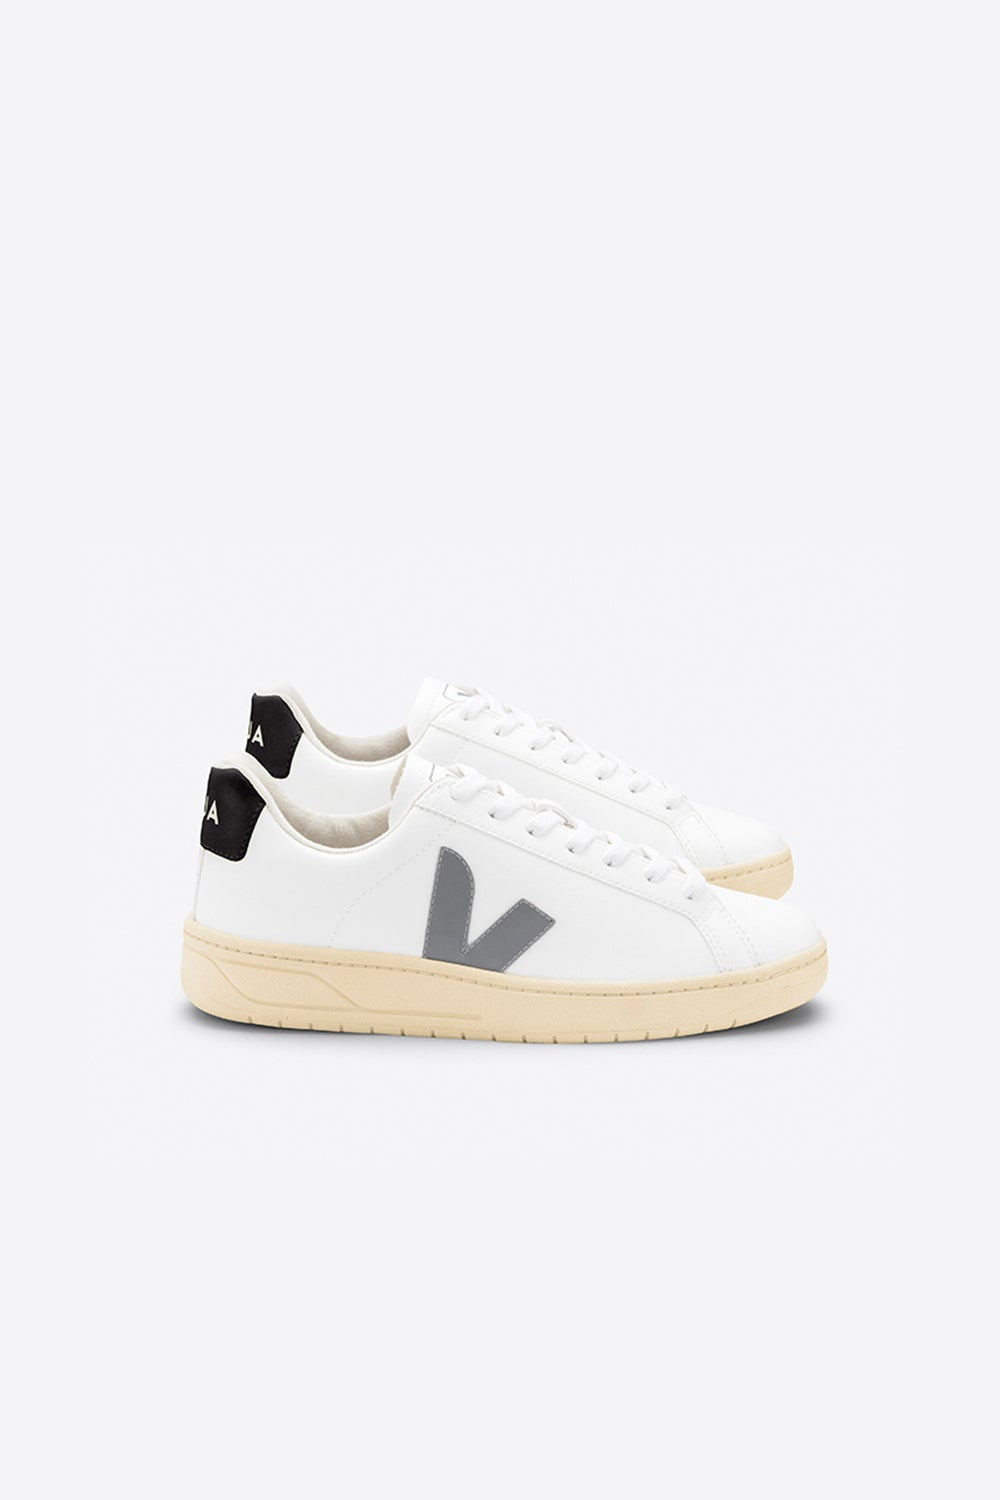 Veja Urca White/Oxford Grey/Black